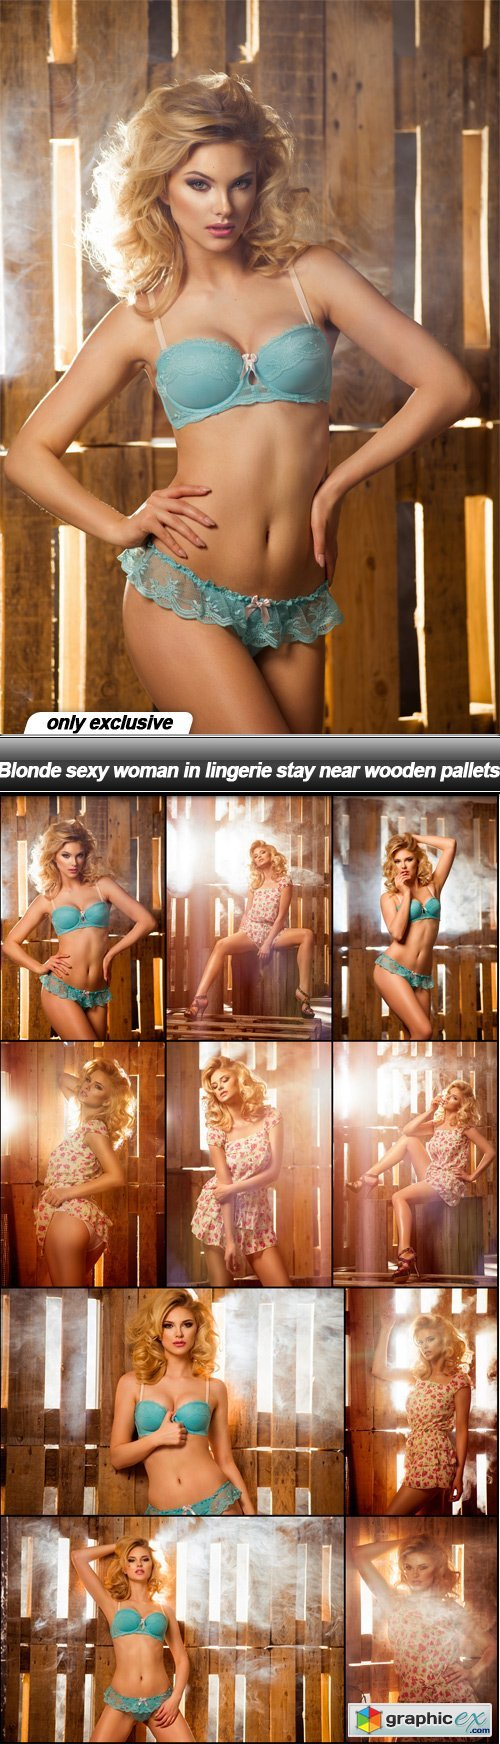 Blonde sexy woman in lingerie stay near wooden pallets - 10 UHQ JPEG